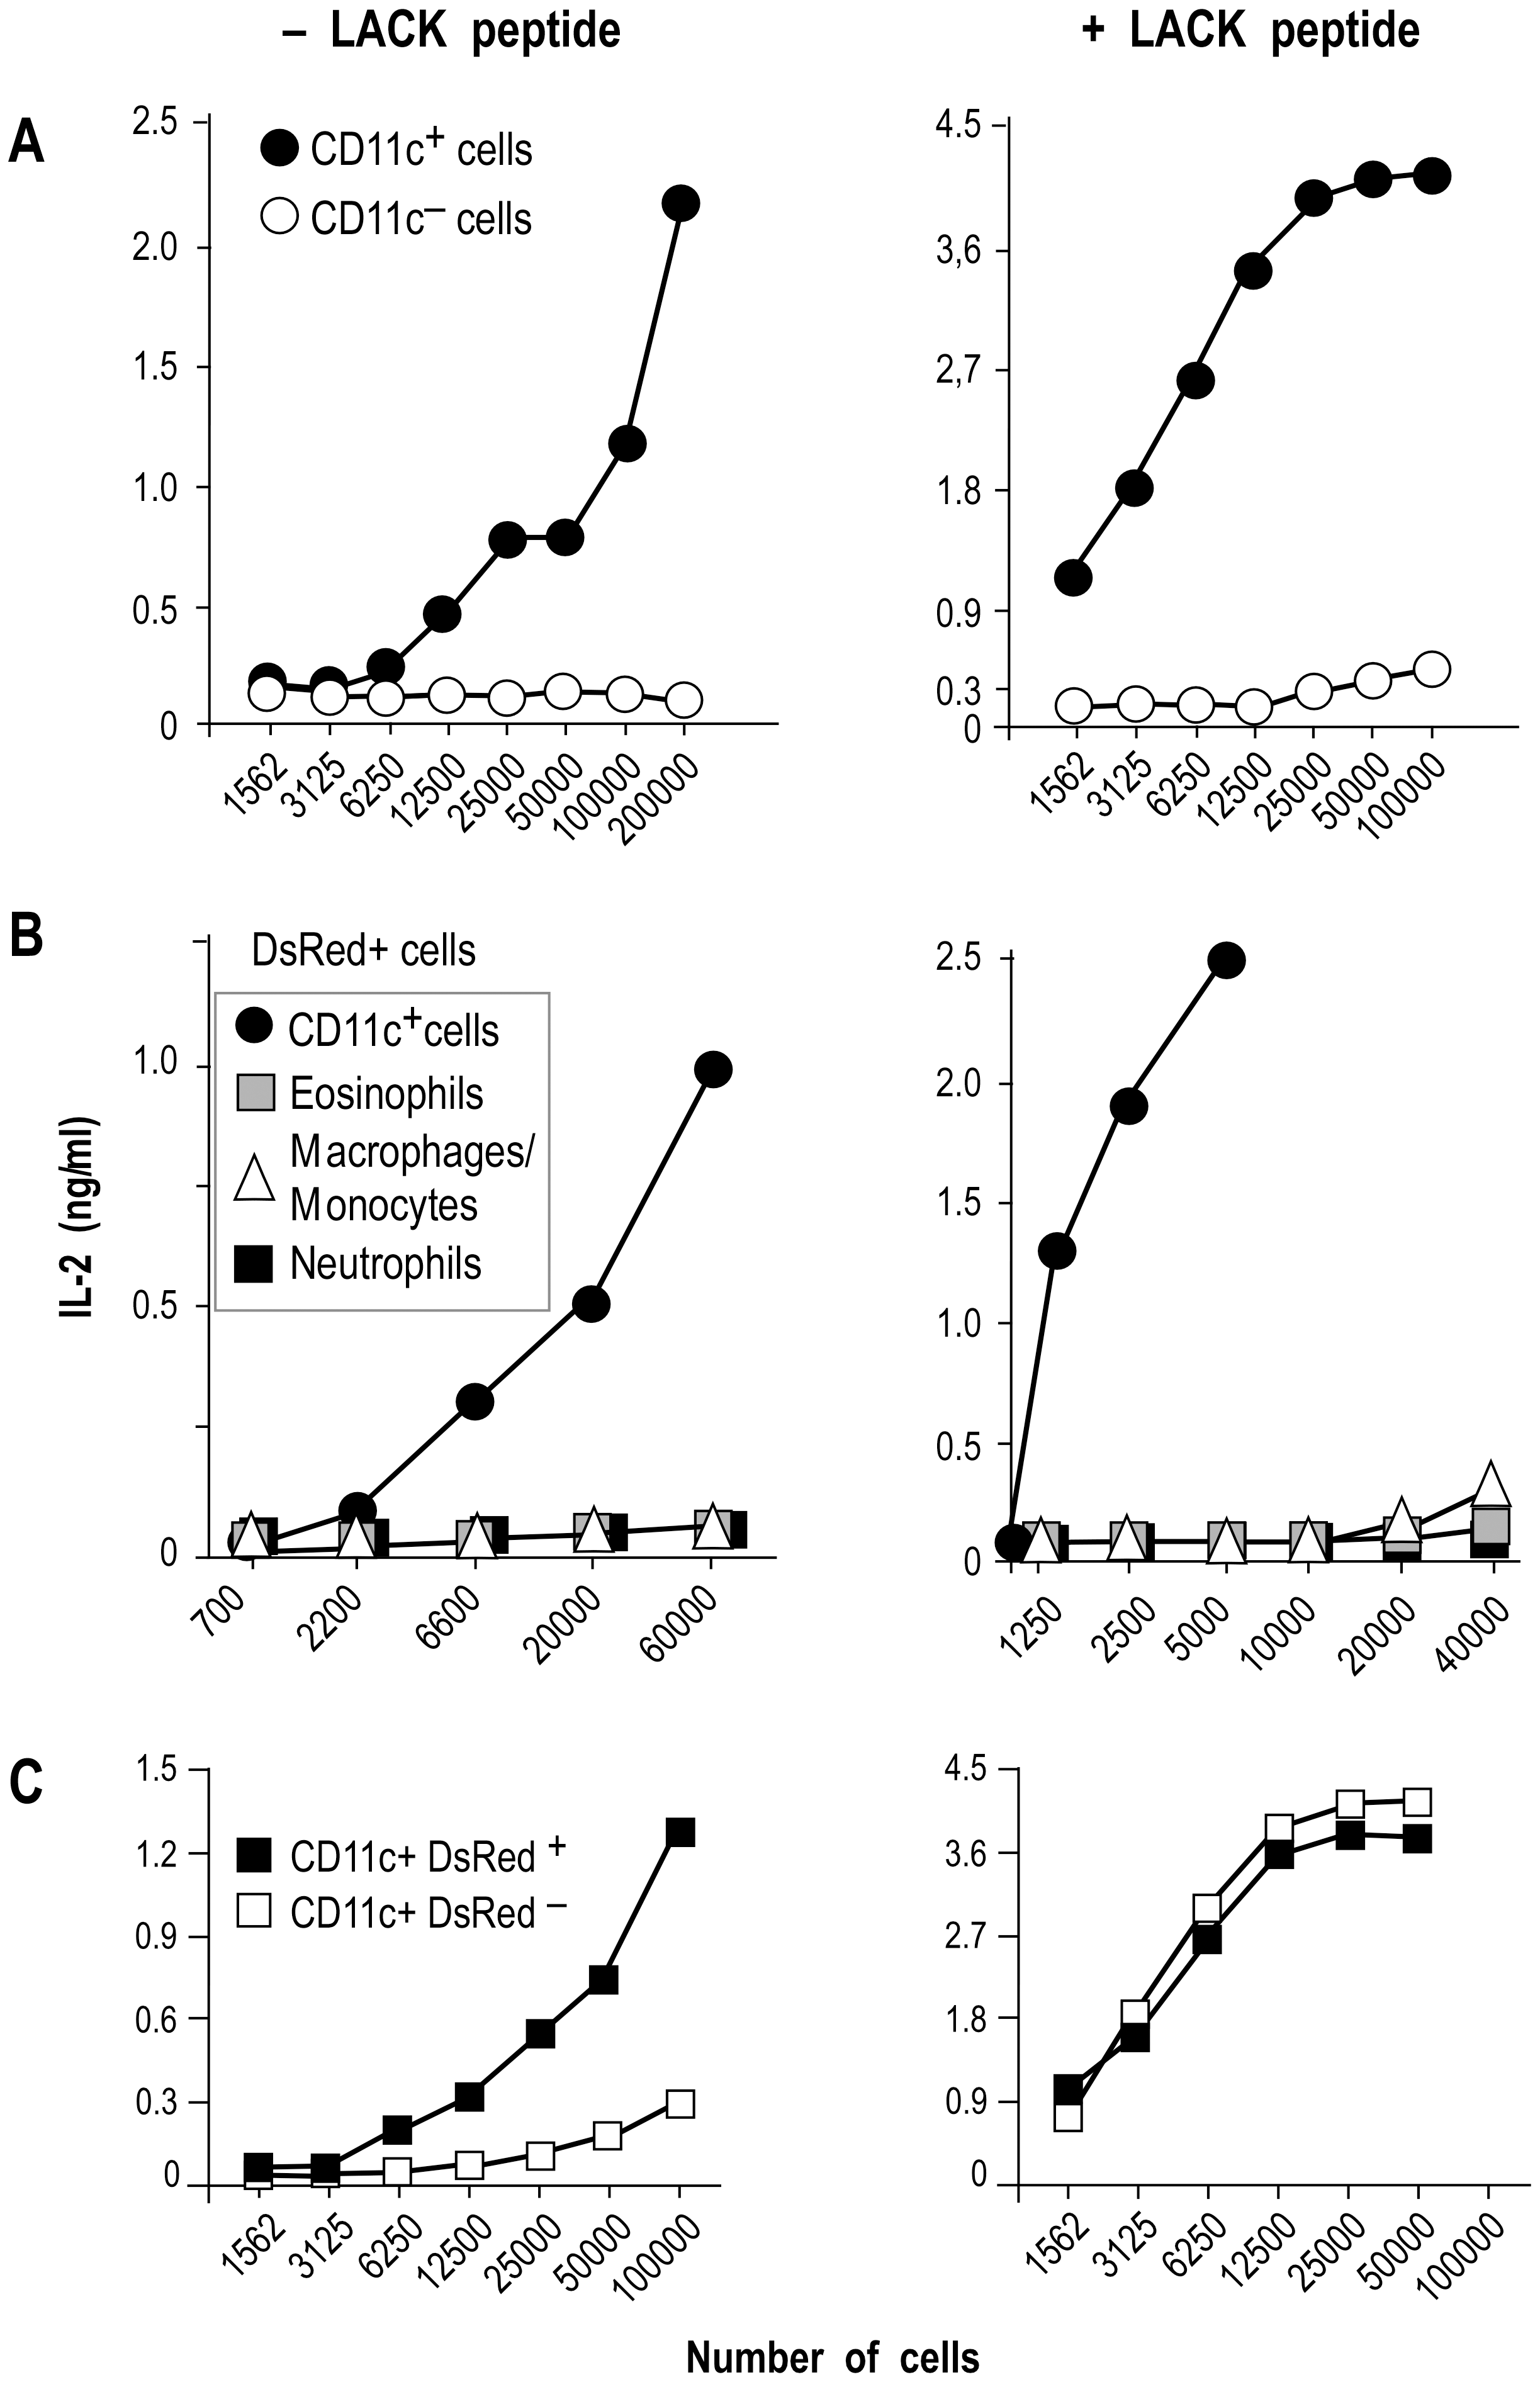 IL-2 secretion by LACK-specific T cell hybridomas upon incubation with different phagocytes.